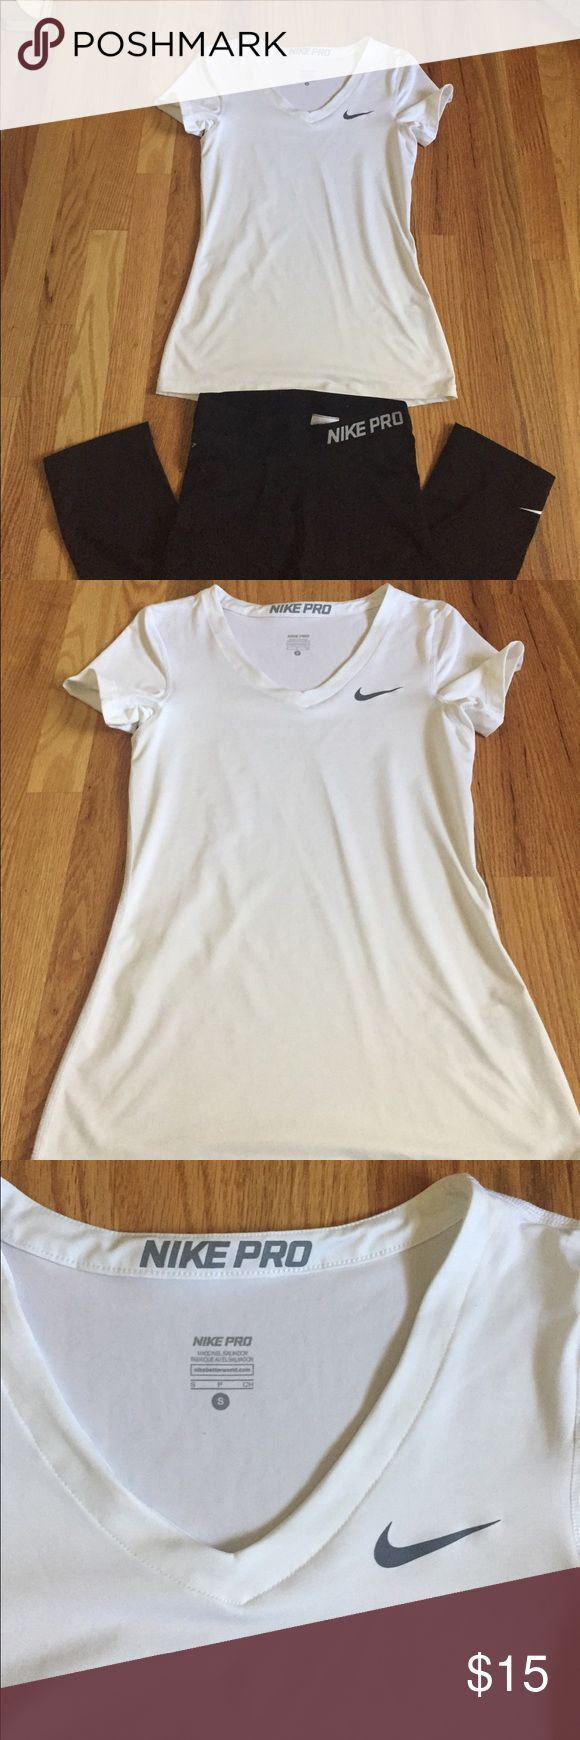 Nike pro work out shirt White v-neck Nike pro shirt. Never worn with no flaws. Material is very absorbing when sweating. Material:84% polyester and 16% spandex Nike Tops